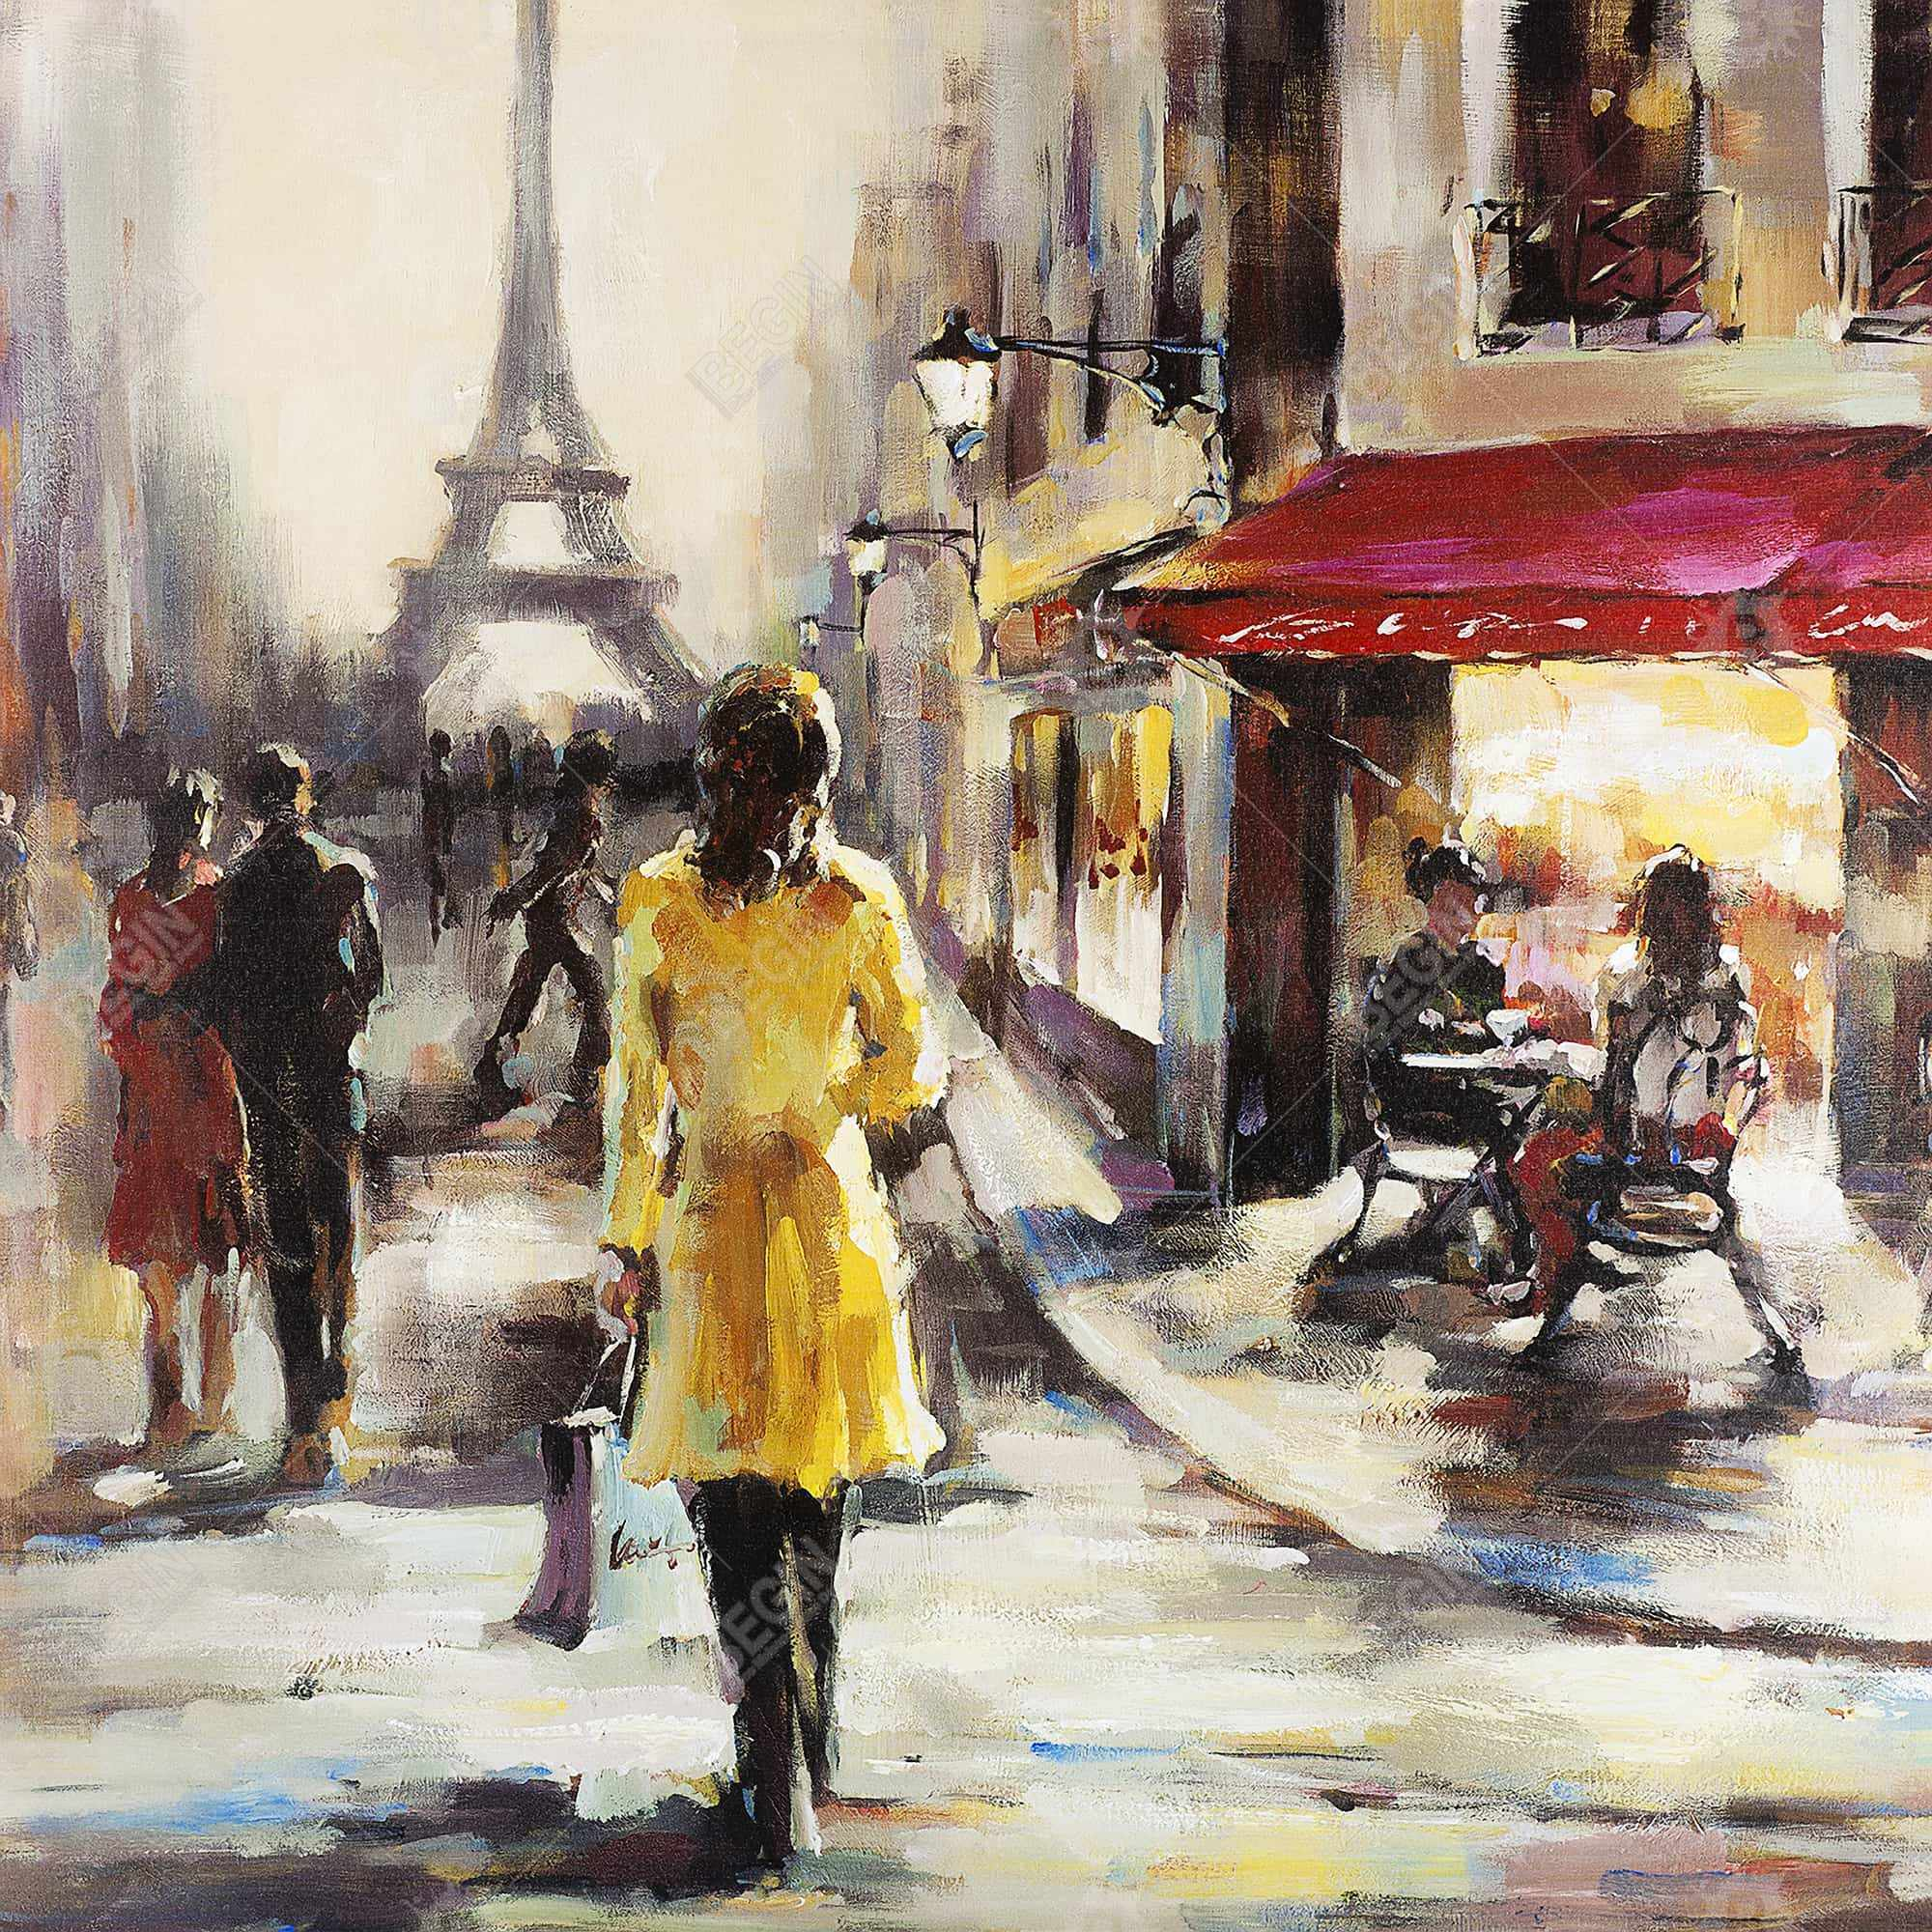 Yellow coat woman walking on the street